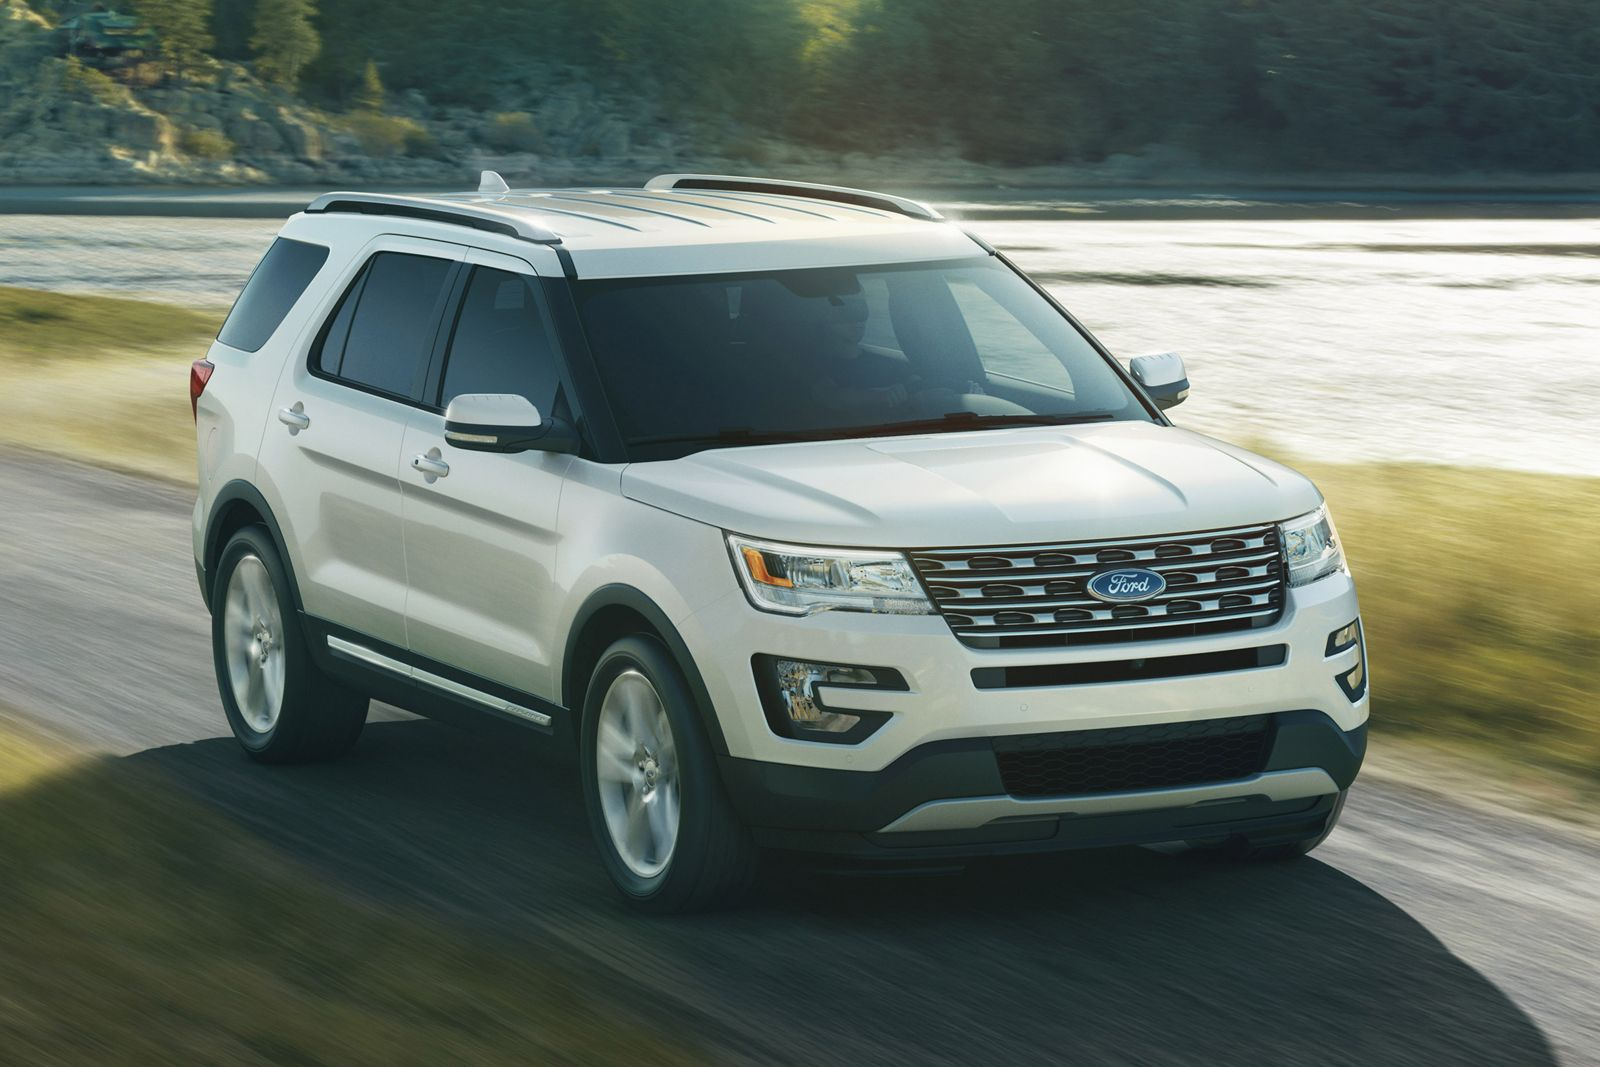 2016 Ford Explorer Gets A New Face 2 3l Ecoboost Engine And